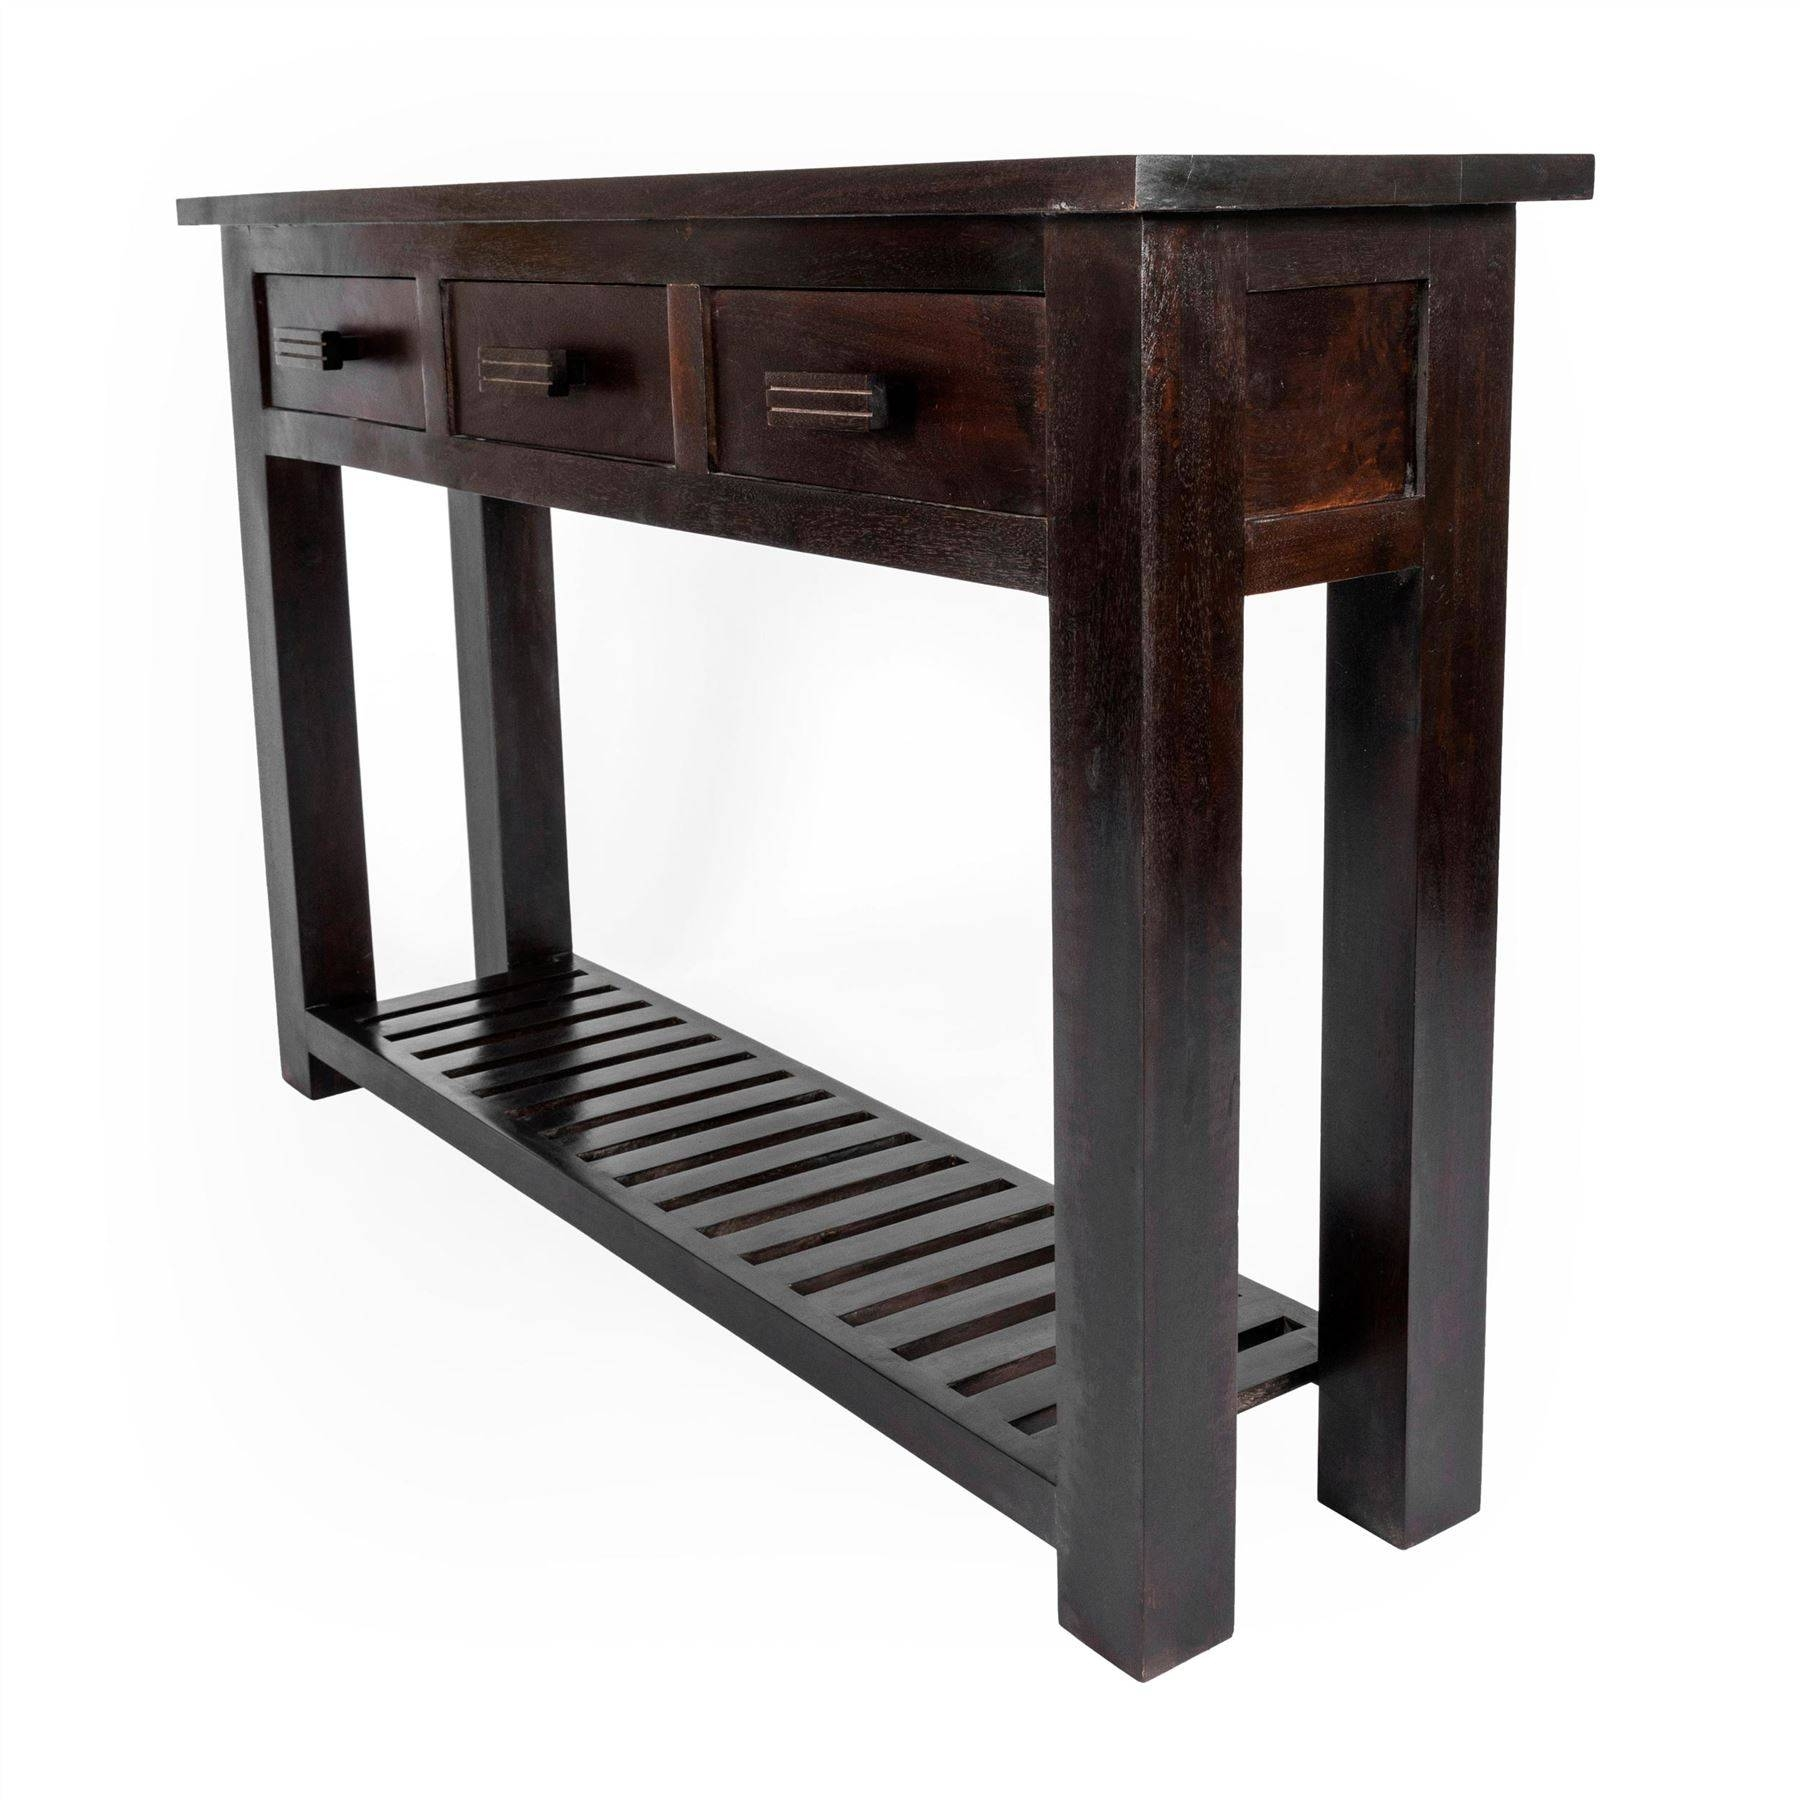 Mangat Solid Dark Wood Indian Furniture Tv Unit, Table Bookcase for Sideboard Tables (Image 9 of 15)